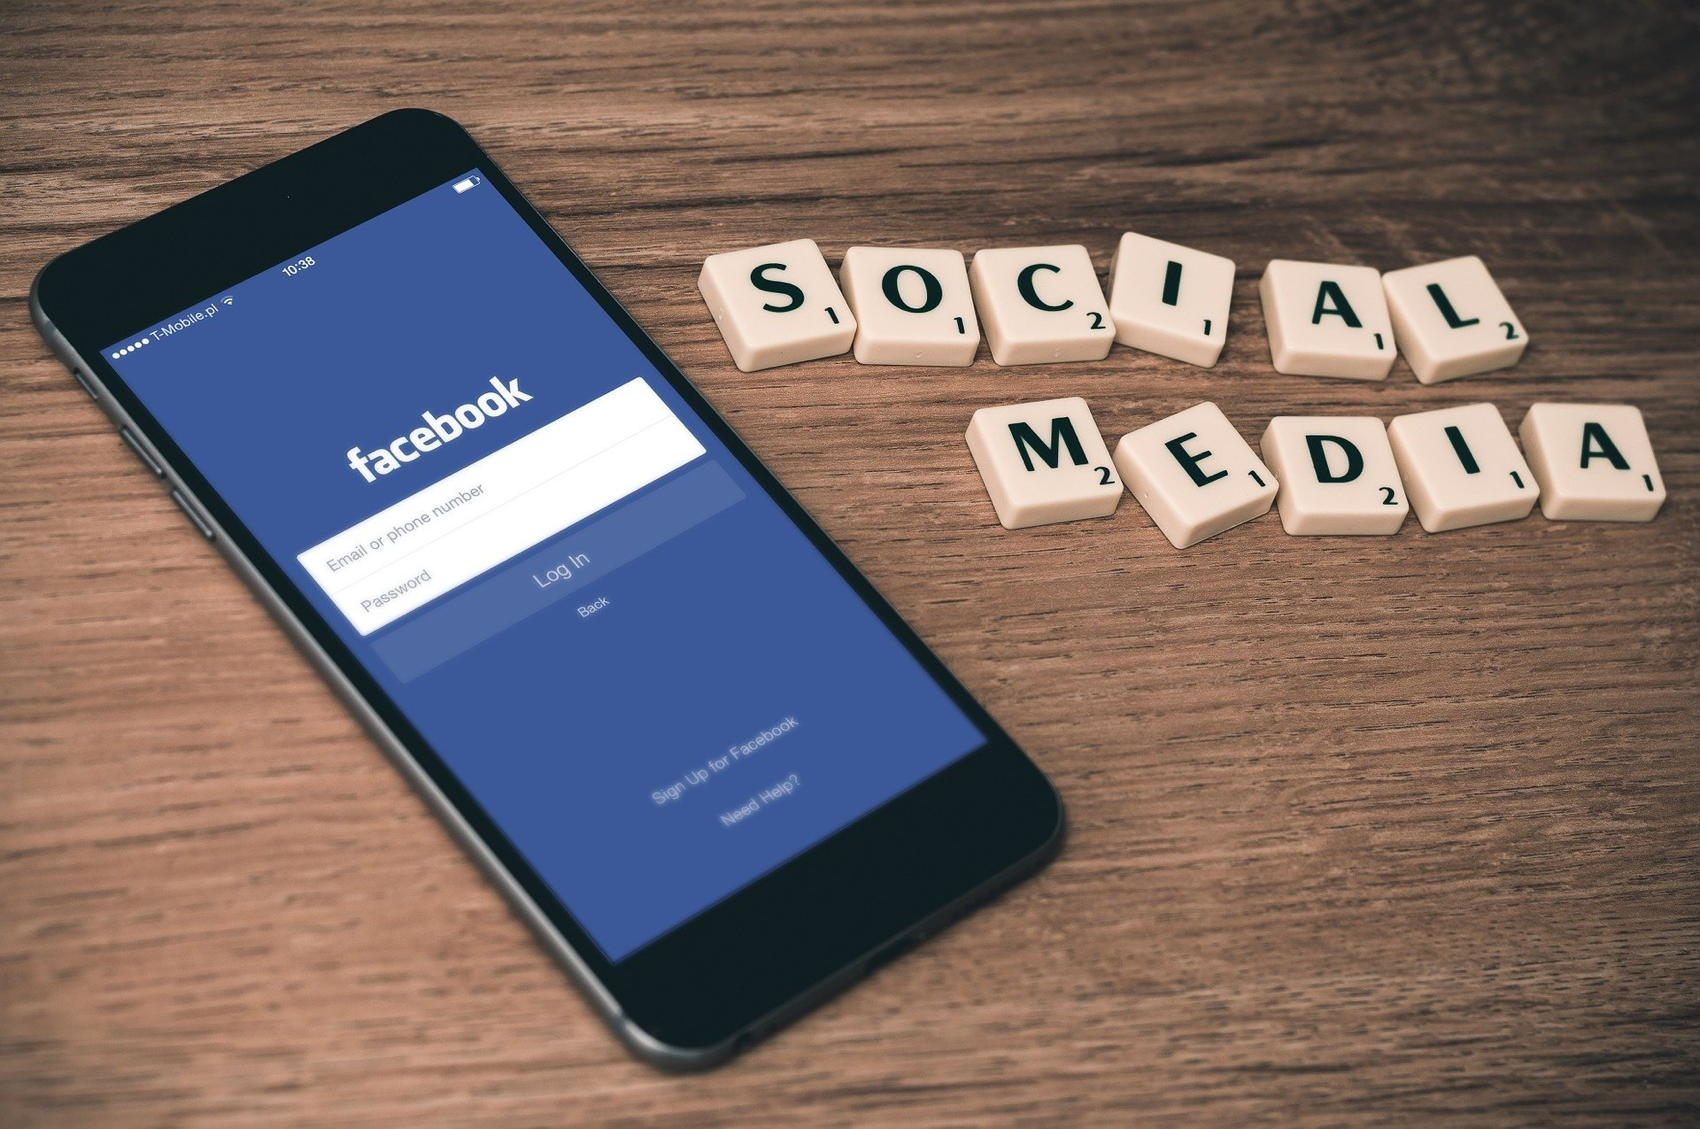 Social Media Facebook - Image by William Iven